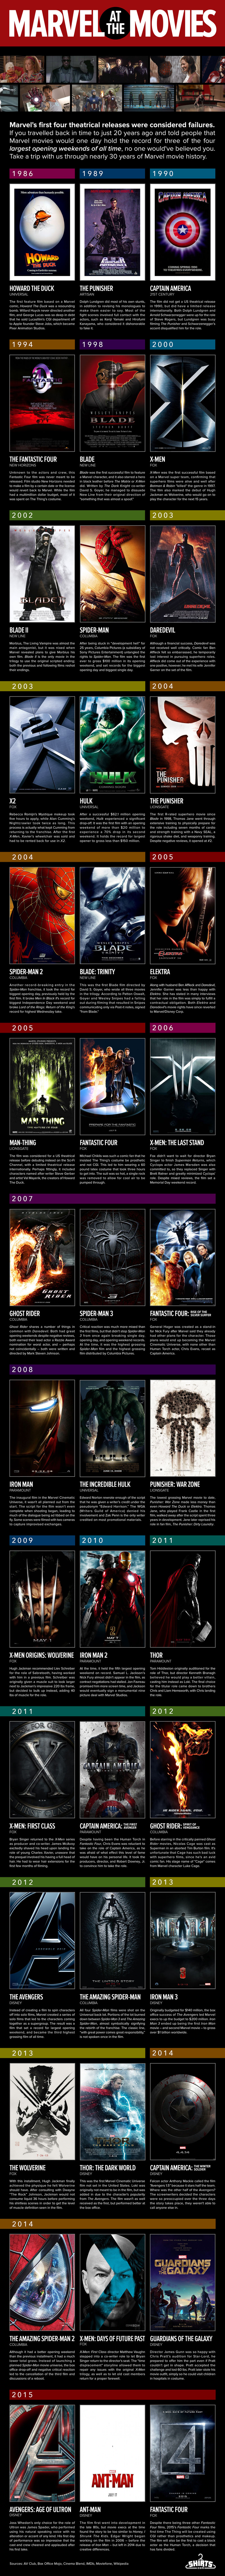 Marvel At The Movies Timeline